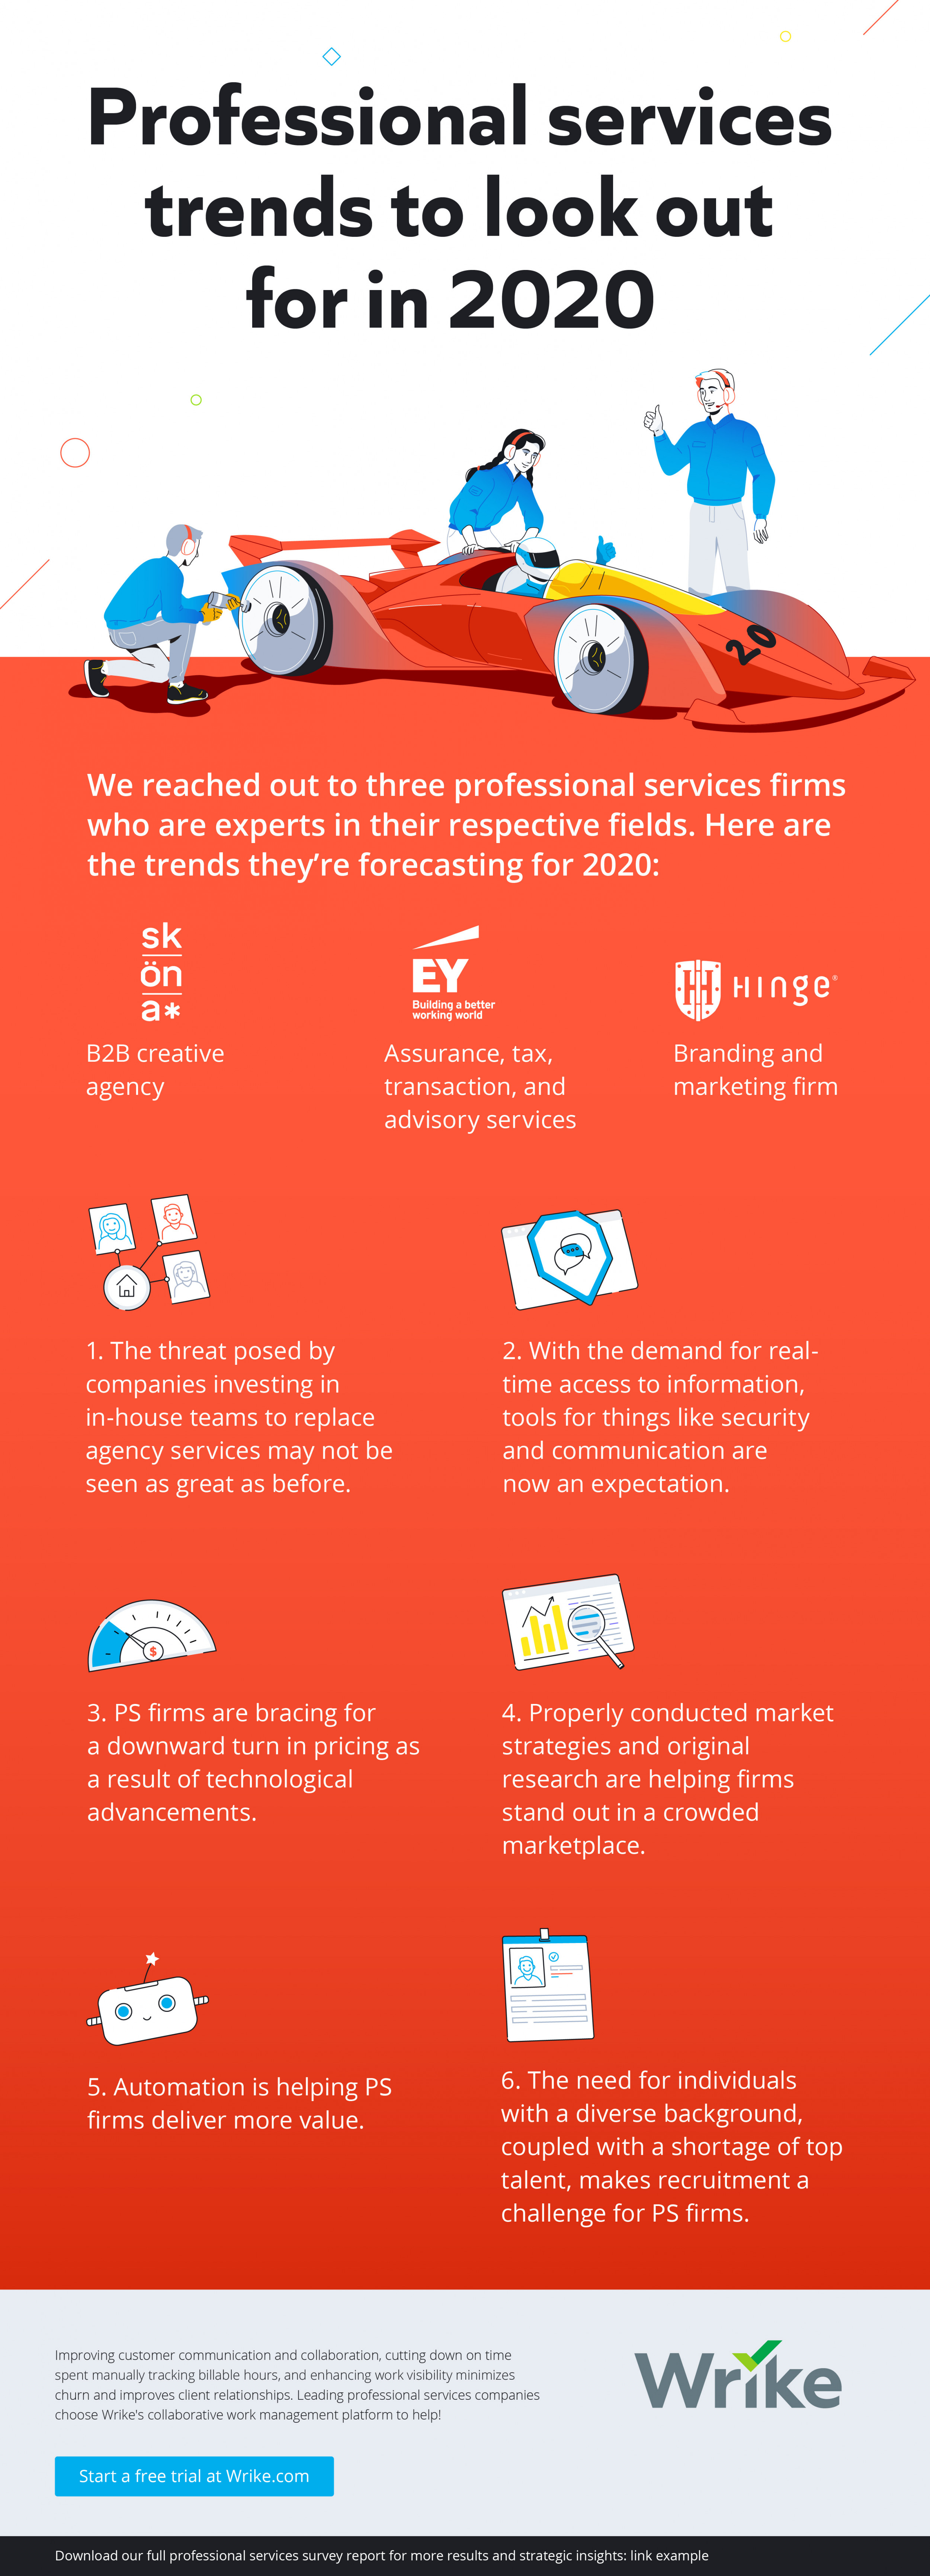 9 Professional Services Trends to Look Out For in 2020 (Infographic)